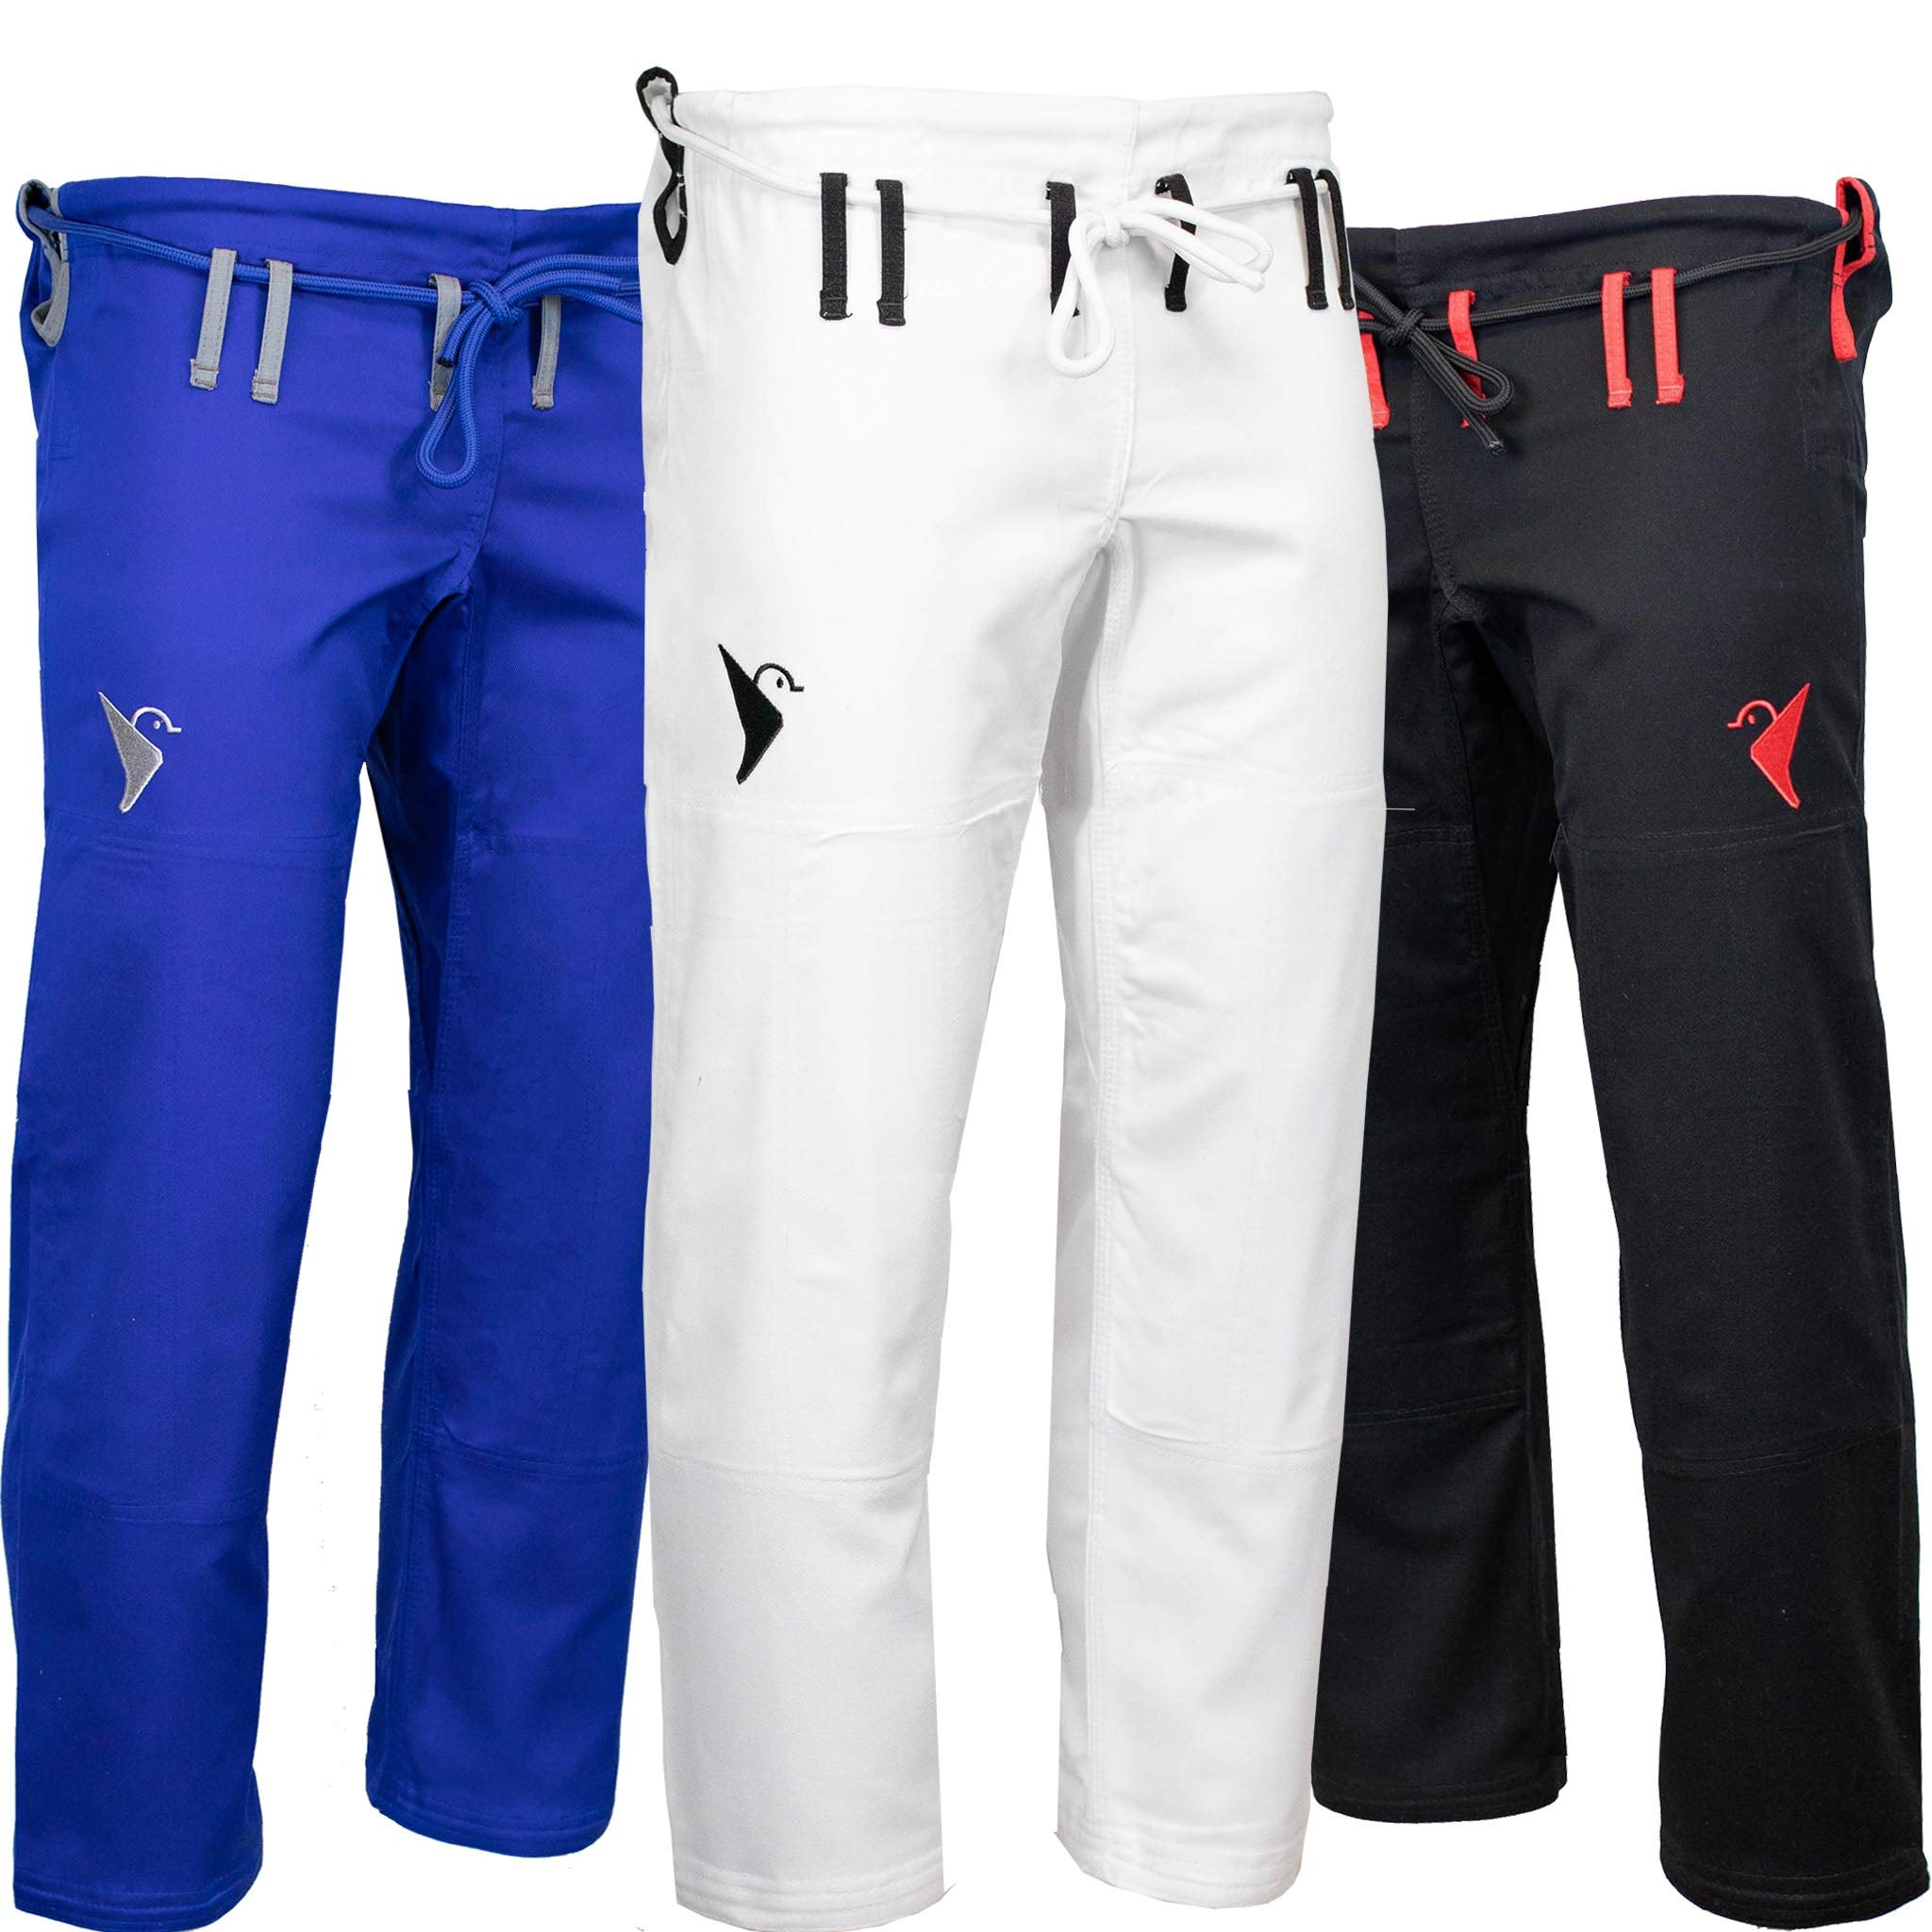 Vali Isso Gi Pants Brazilian Jiu Jitsu Gi 10oz Cotton for BJJ (Blue, A3) by Vali